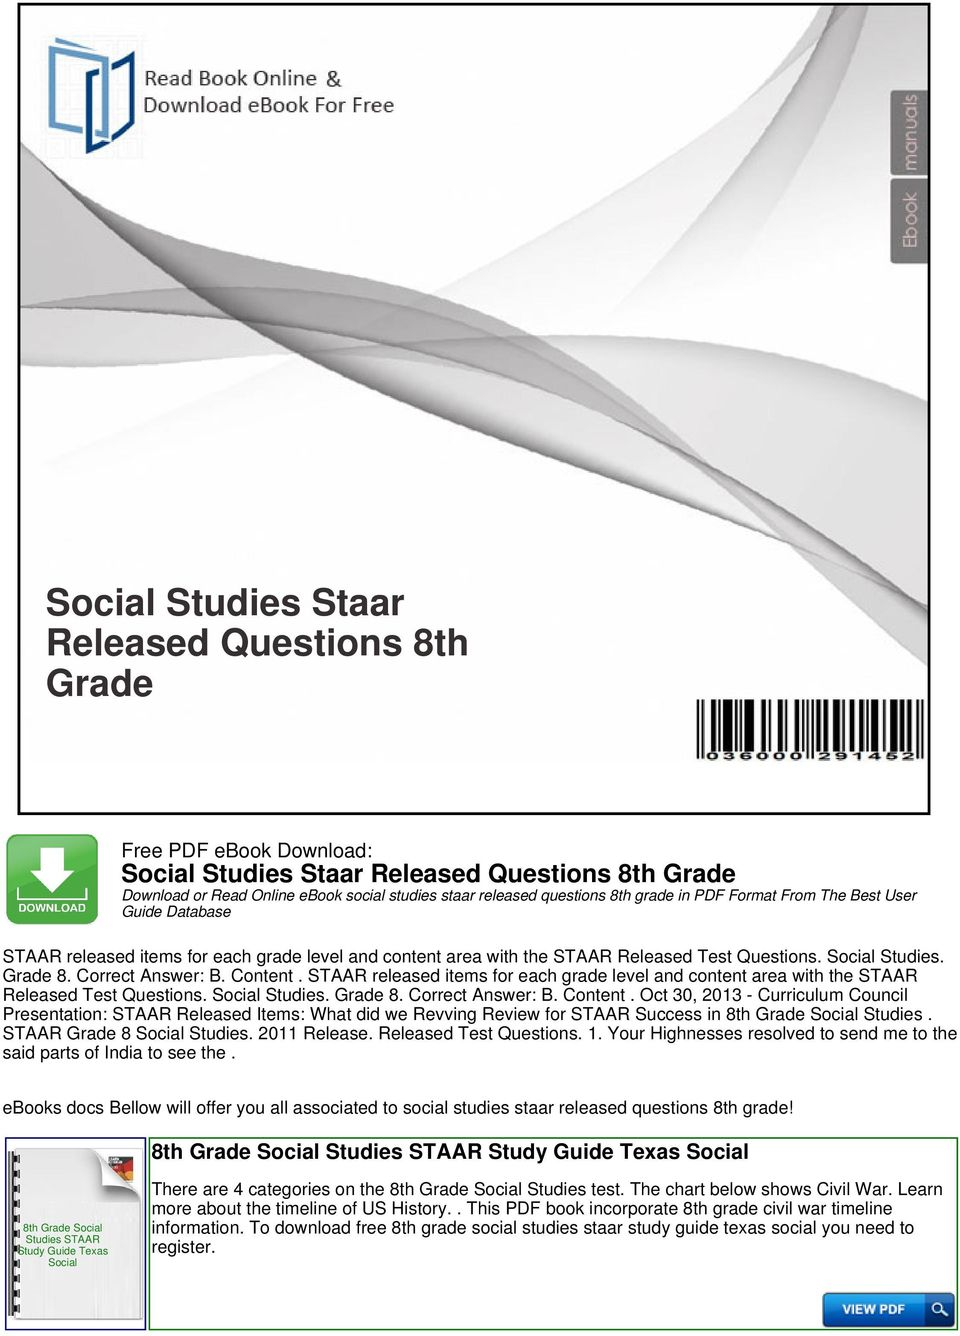 Social studies staar released questions 8th grade pdf staar released items for each grade level and content area with the staar questions fandeluxe Image collections